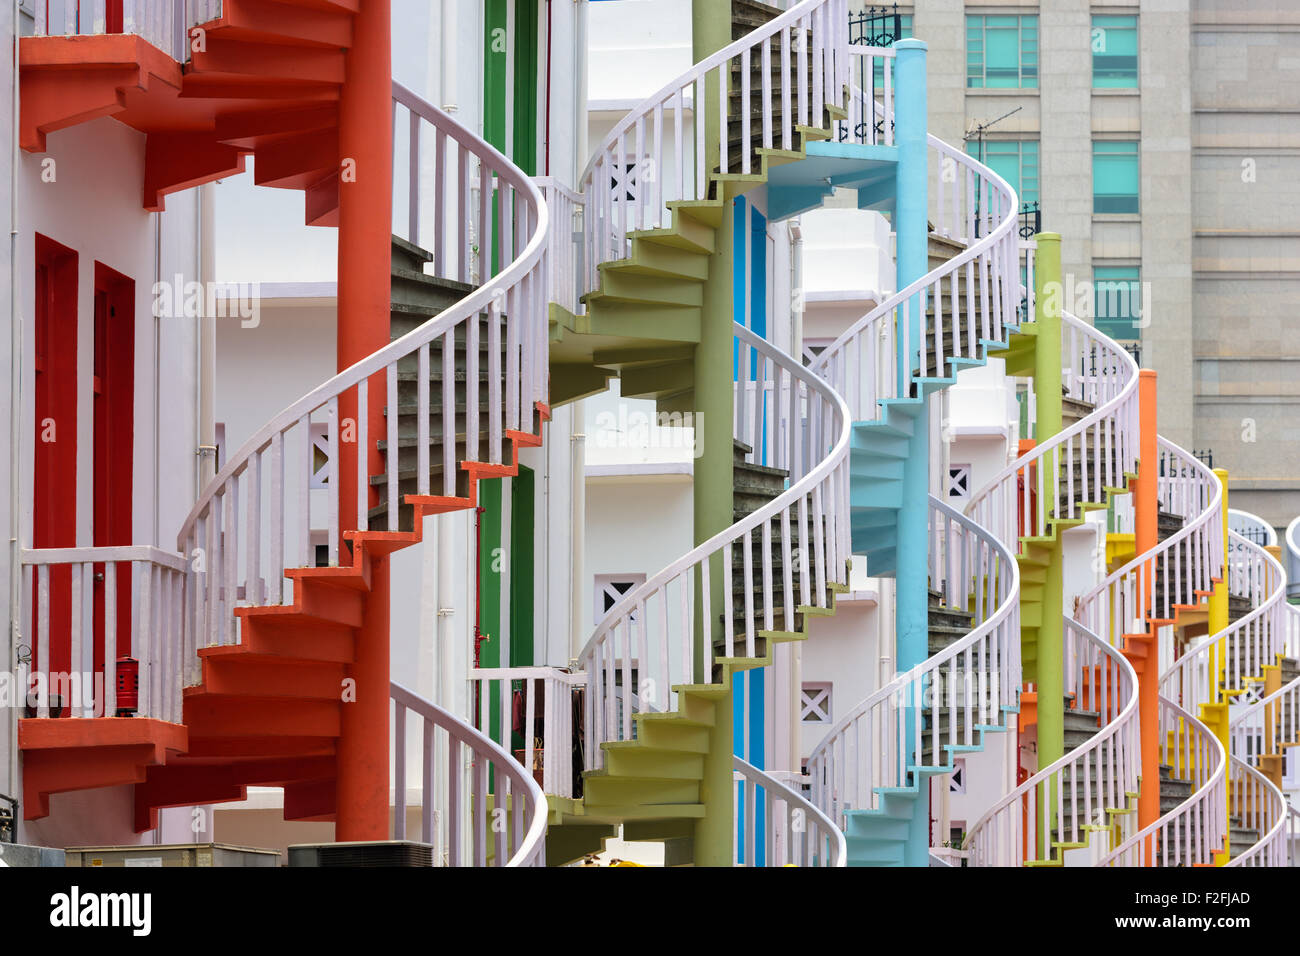 Singapur in Bugis Village Wendeltreppen. Stockbild